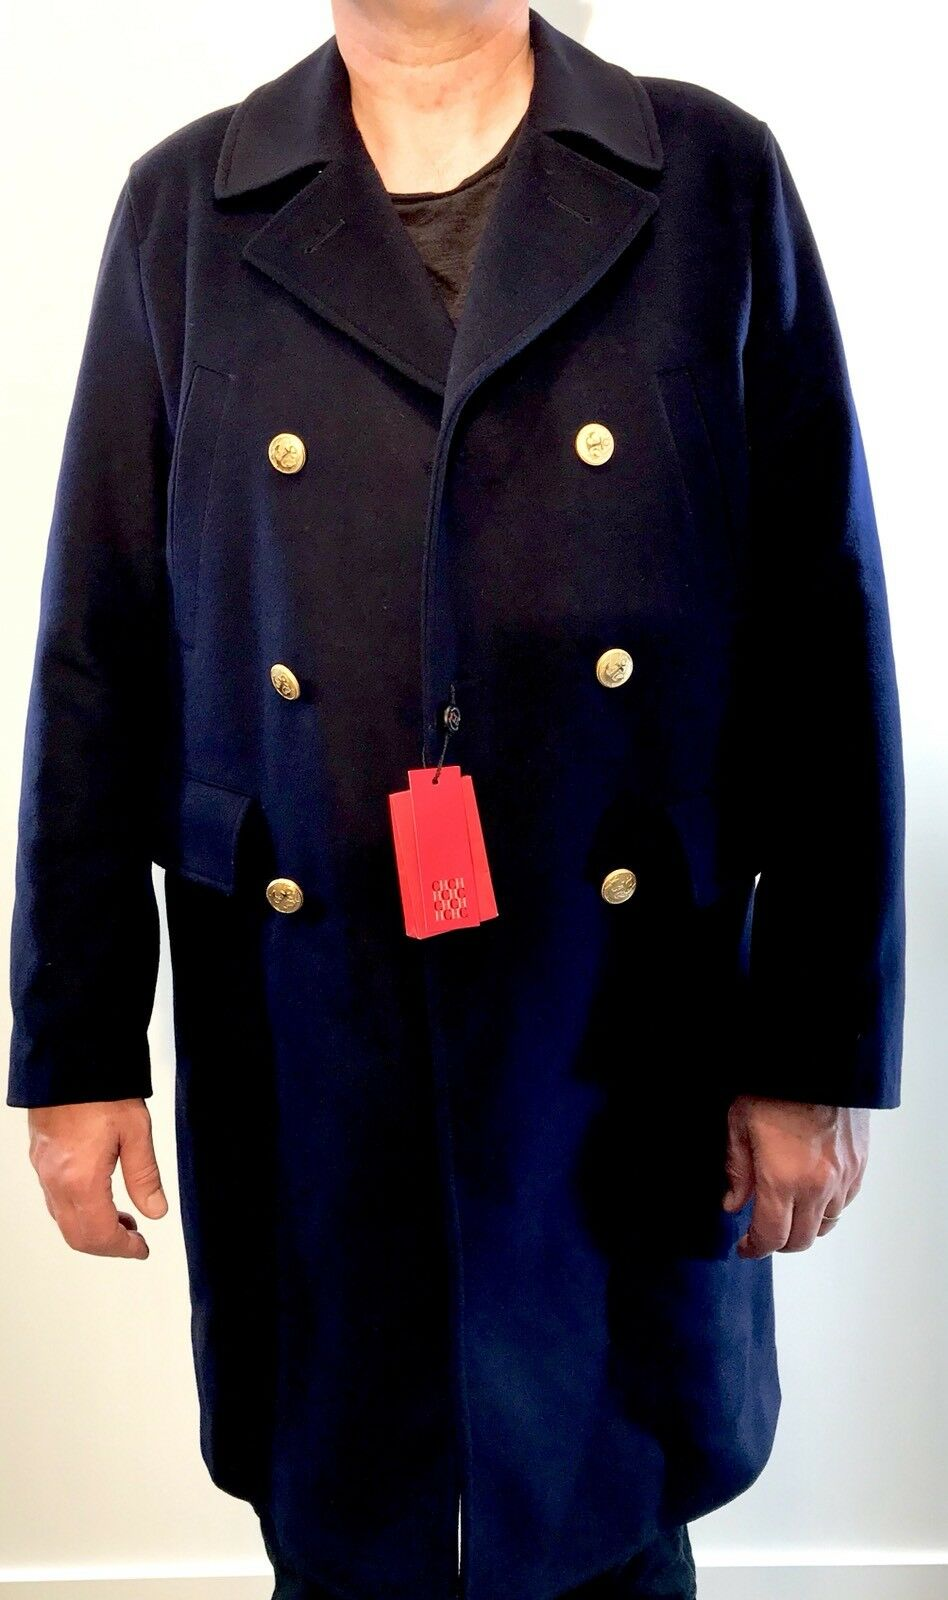 Carolina Herrera Men's Military Style Coat. Retails $1,145 Price $495 NWT Size L